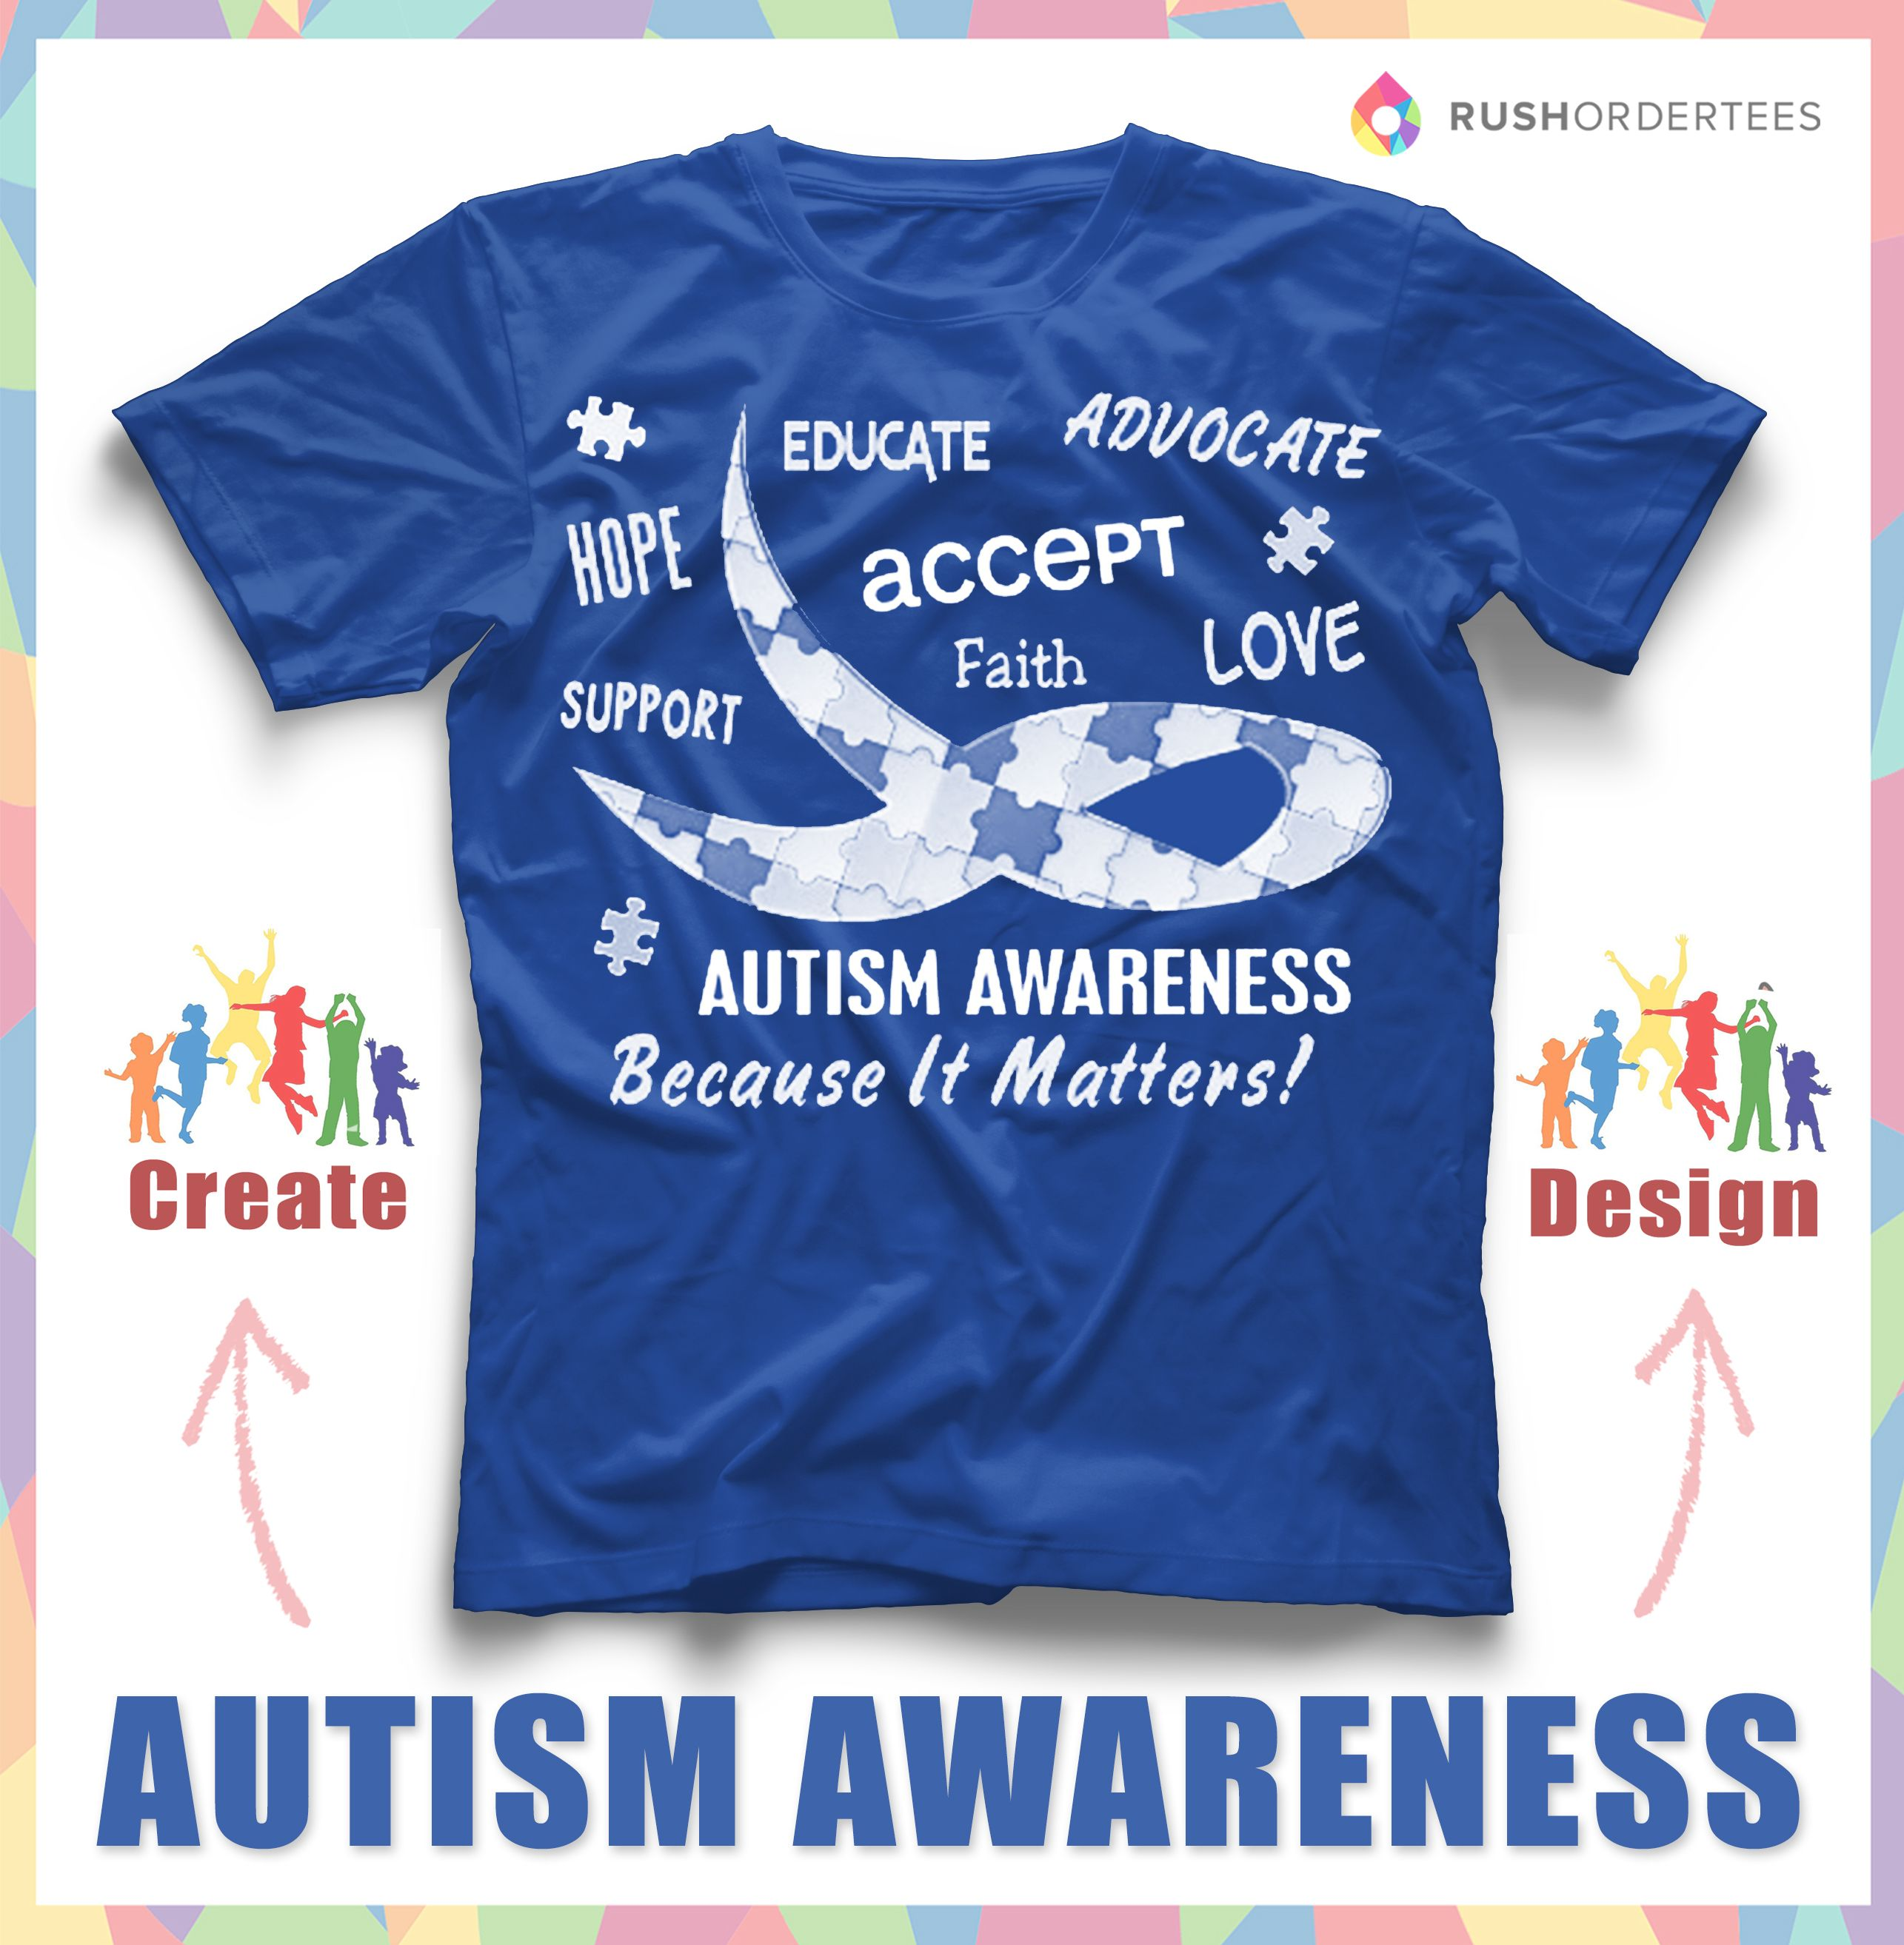 Support Autism Awareness By Wearing Custom T Shirts Create Your Own